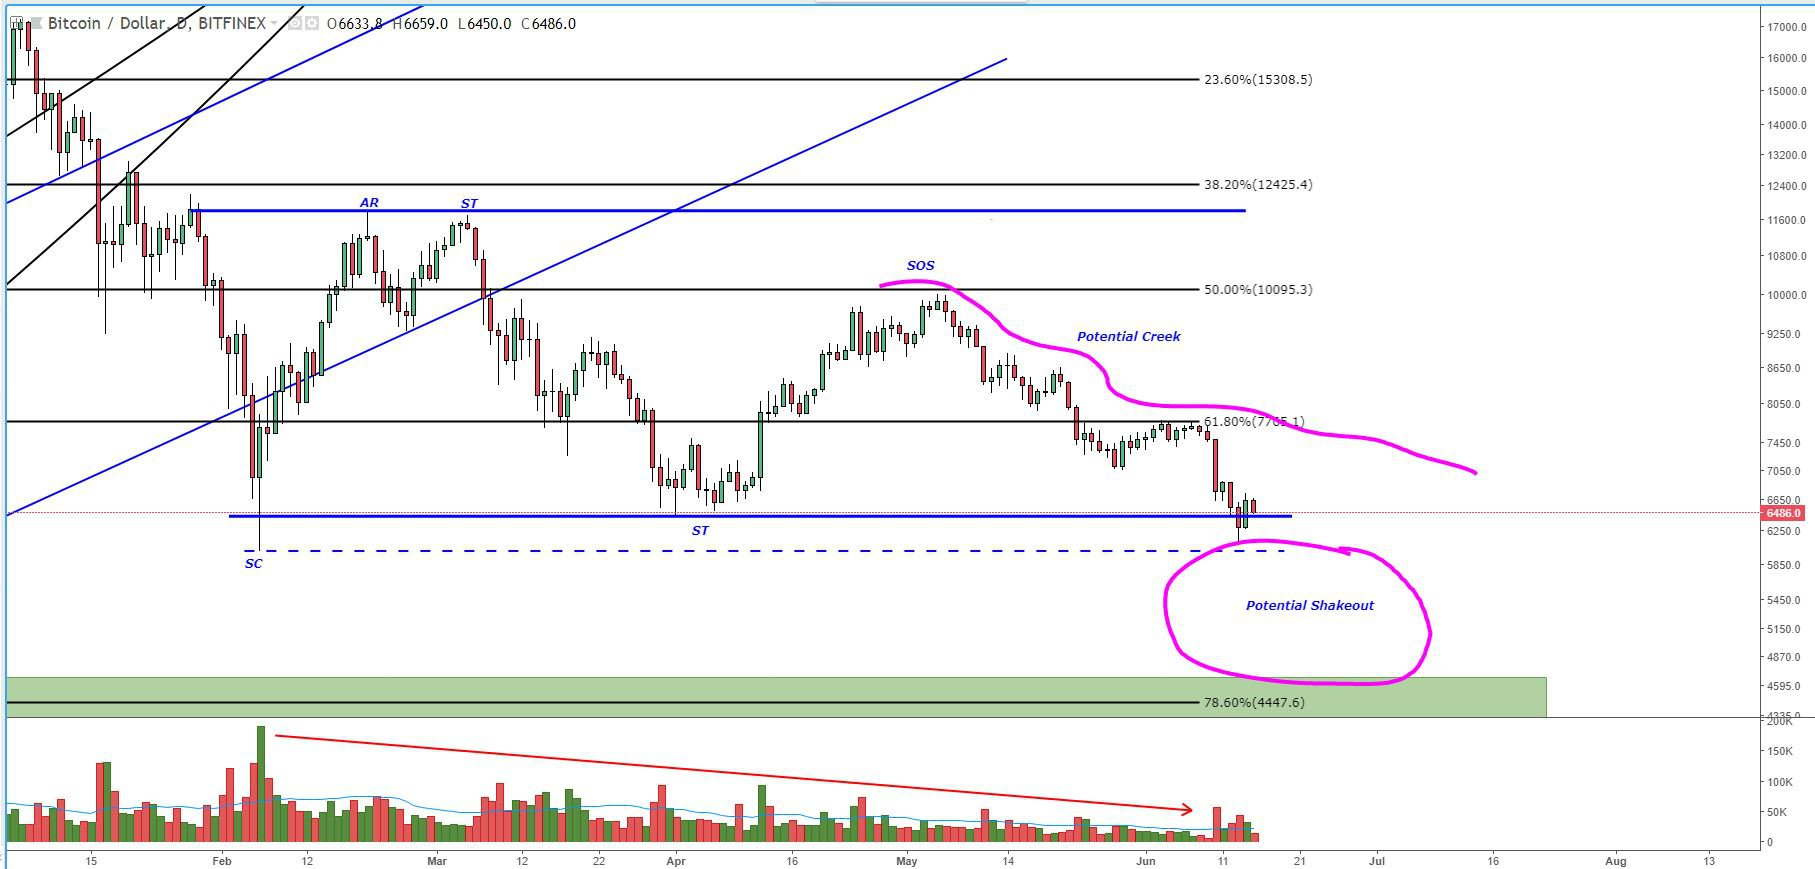 Figure 3 Btc Usd Daily Candles Potential Aculation Tr